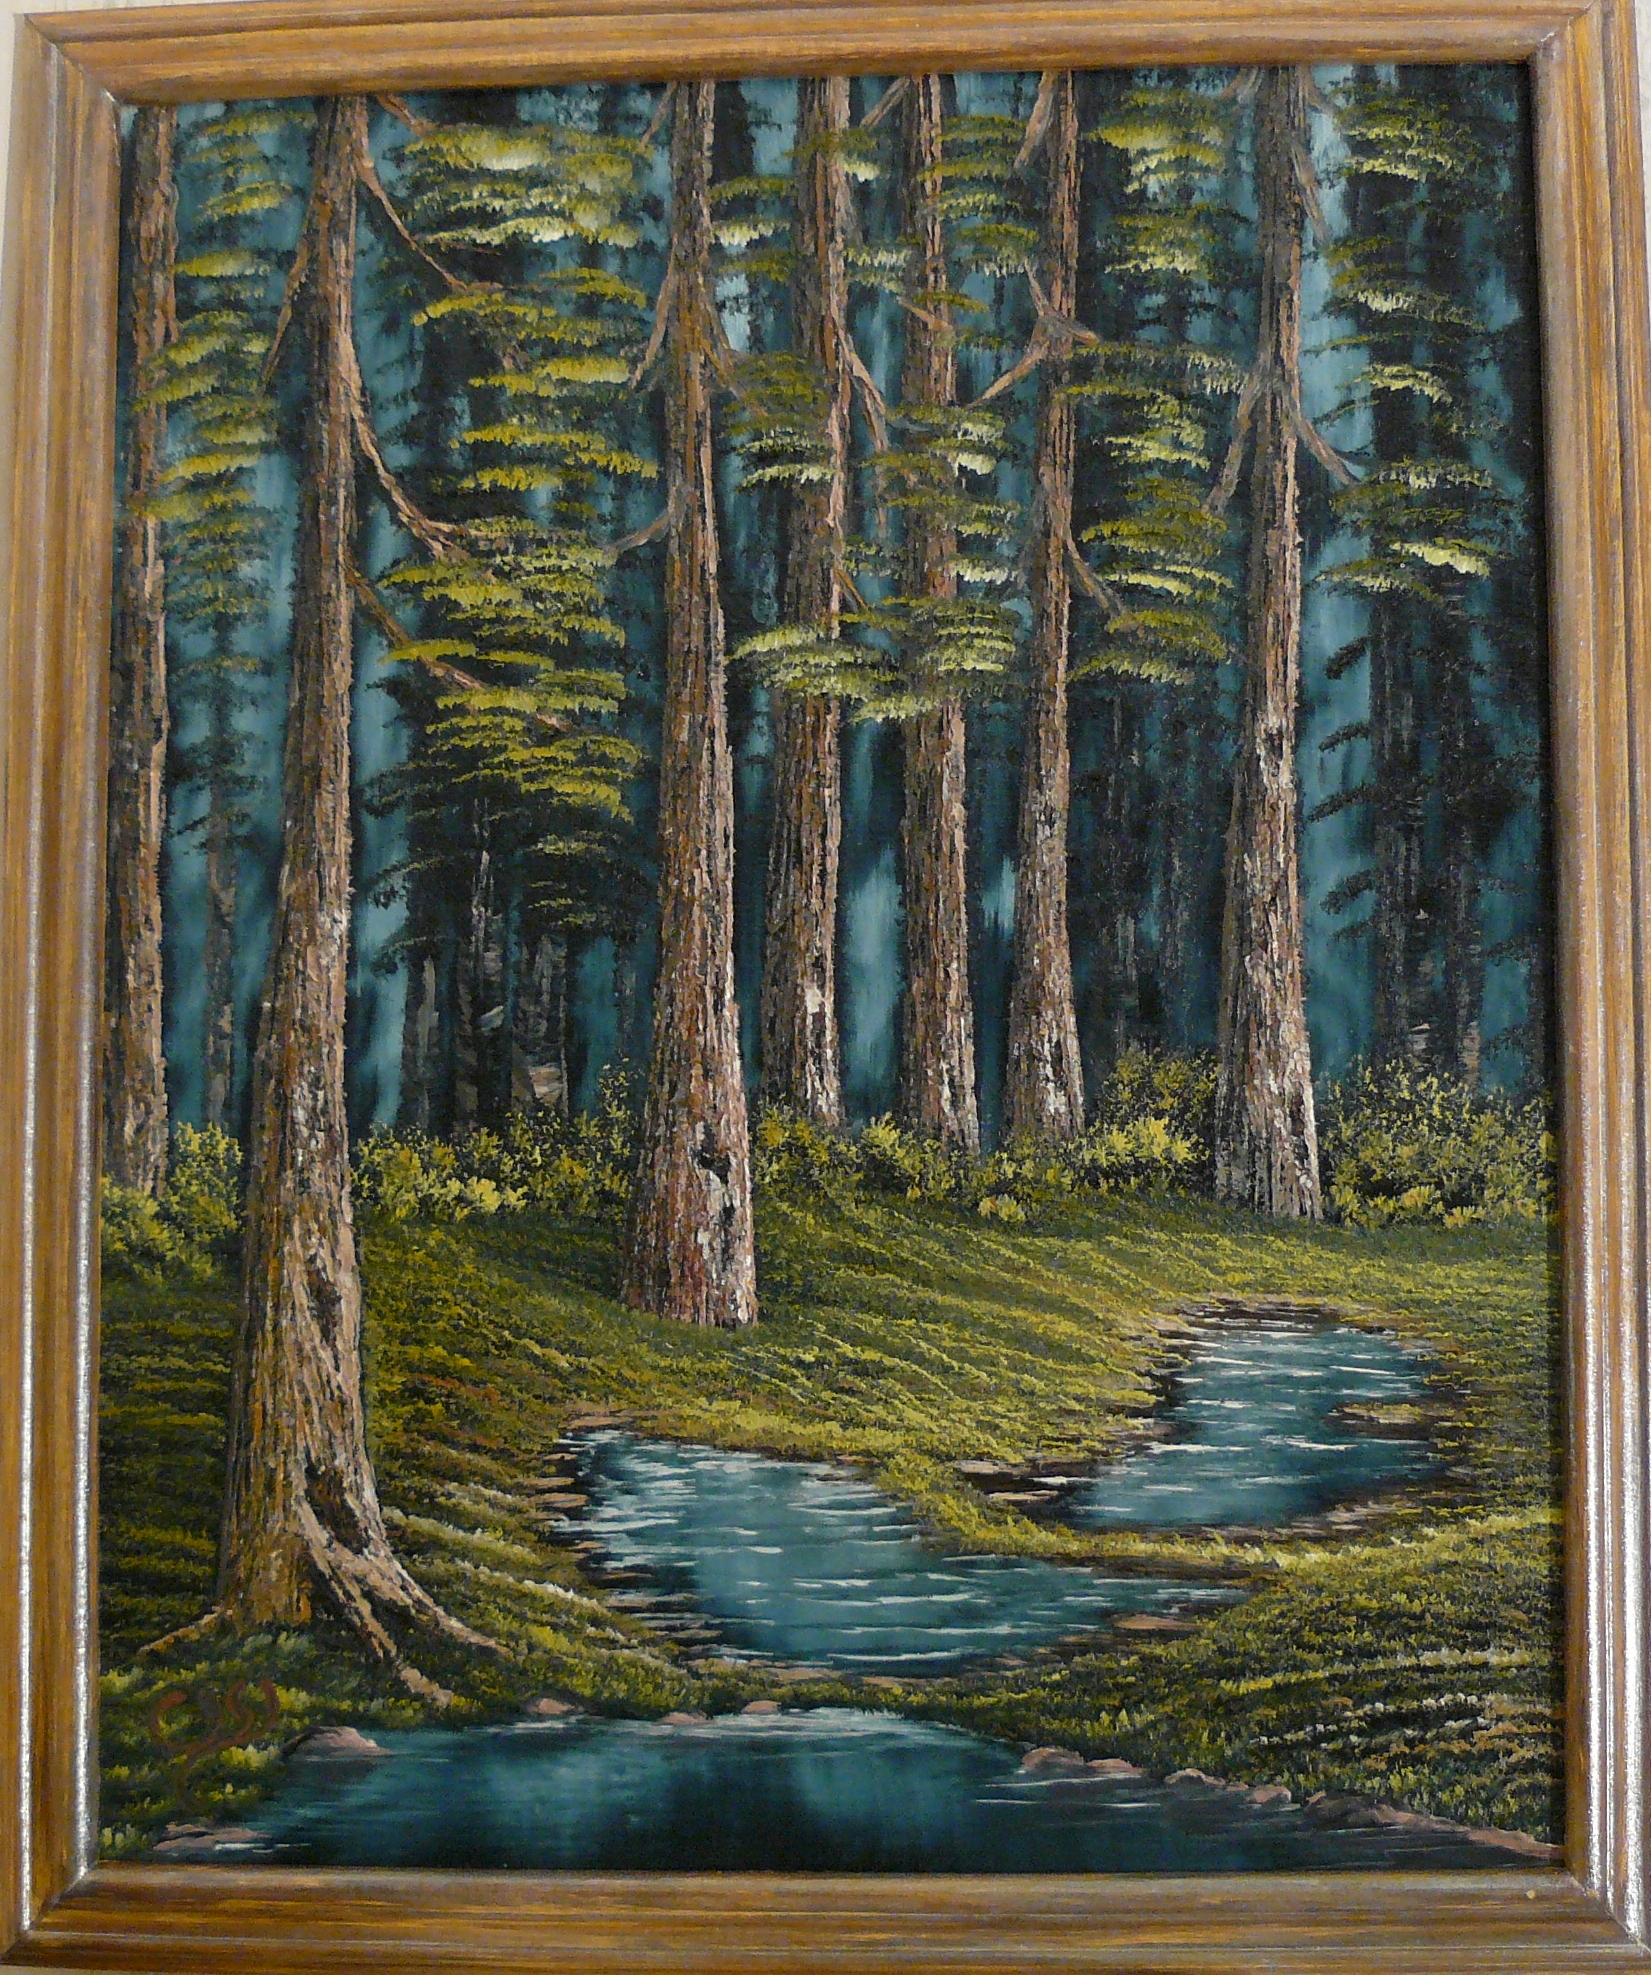 """Three small ponds deep in the forest"". 2012. Olja, 50X40 cm."